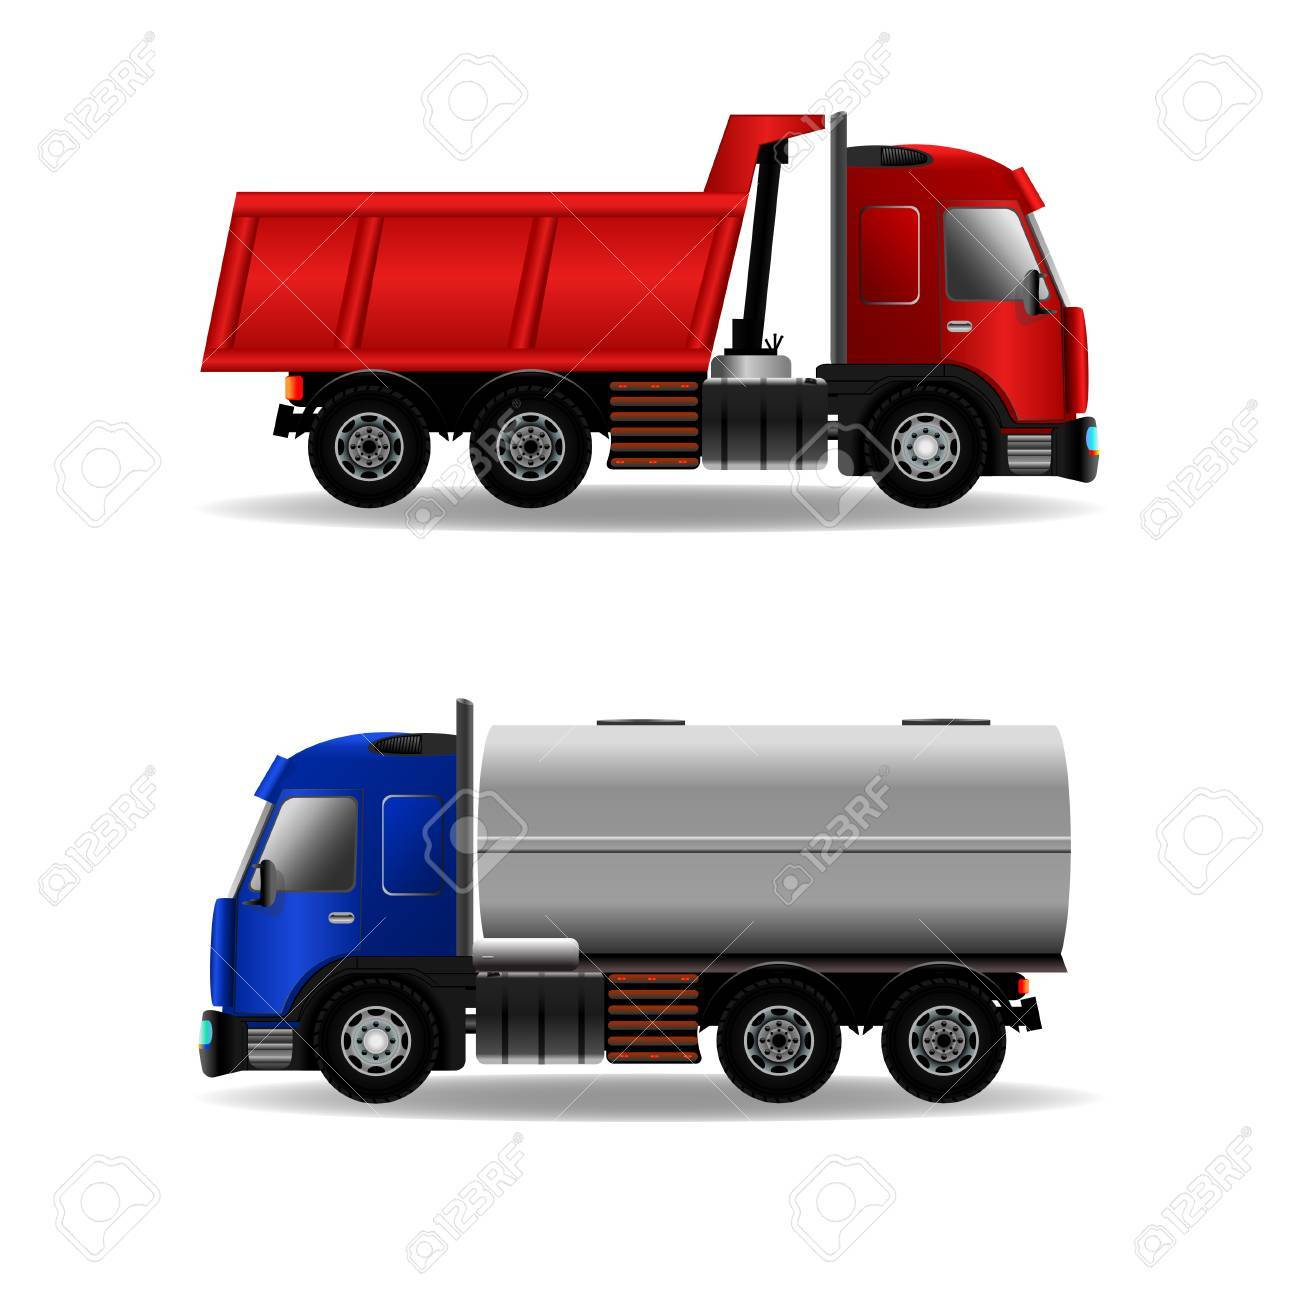 248 Flatbed Truck Stock Vector Illustration And Royalty Free ...